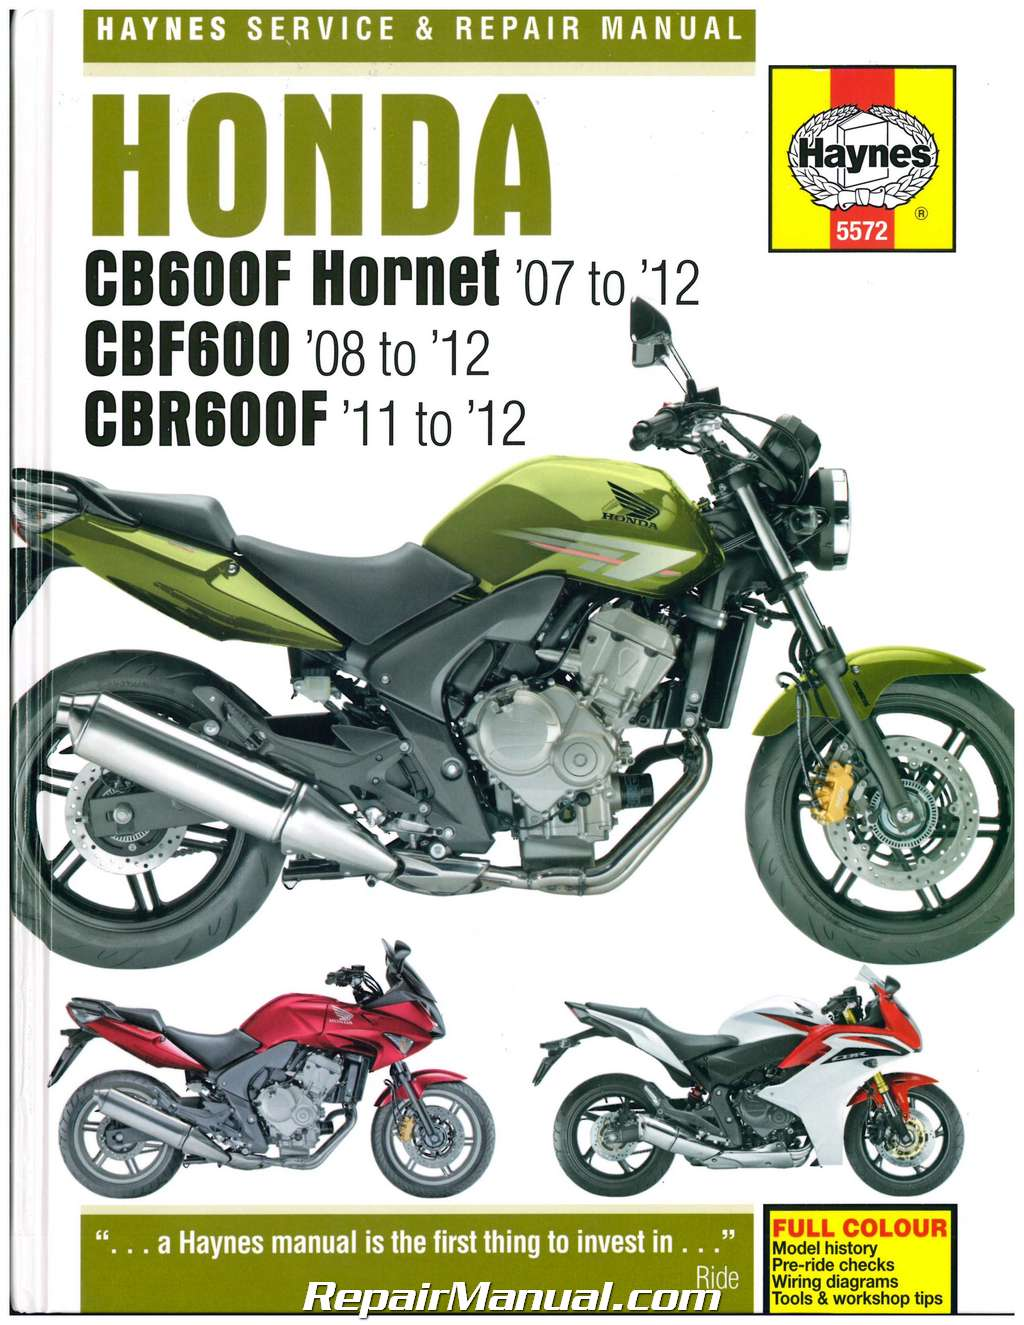 hight resolution of honda cb600f hornet cbf600 cbr600f 2007 2012 haynes repair manual